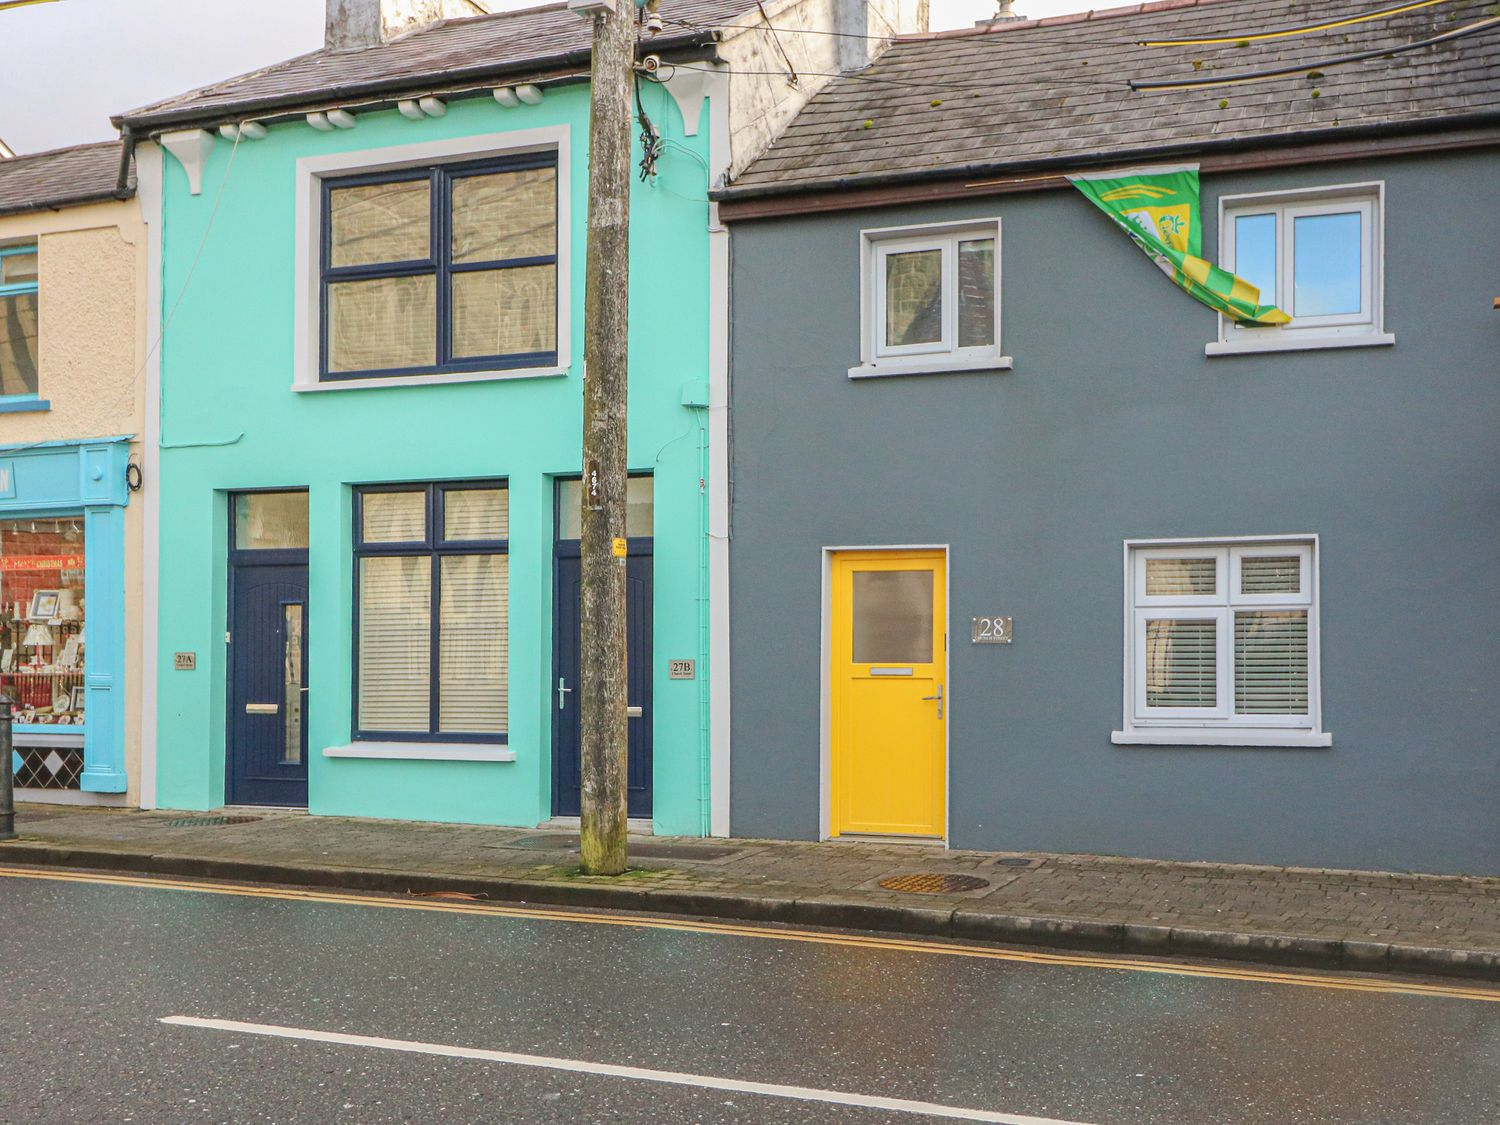 28 Church Street - County Kerry - 1022503 - photo 1